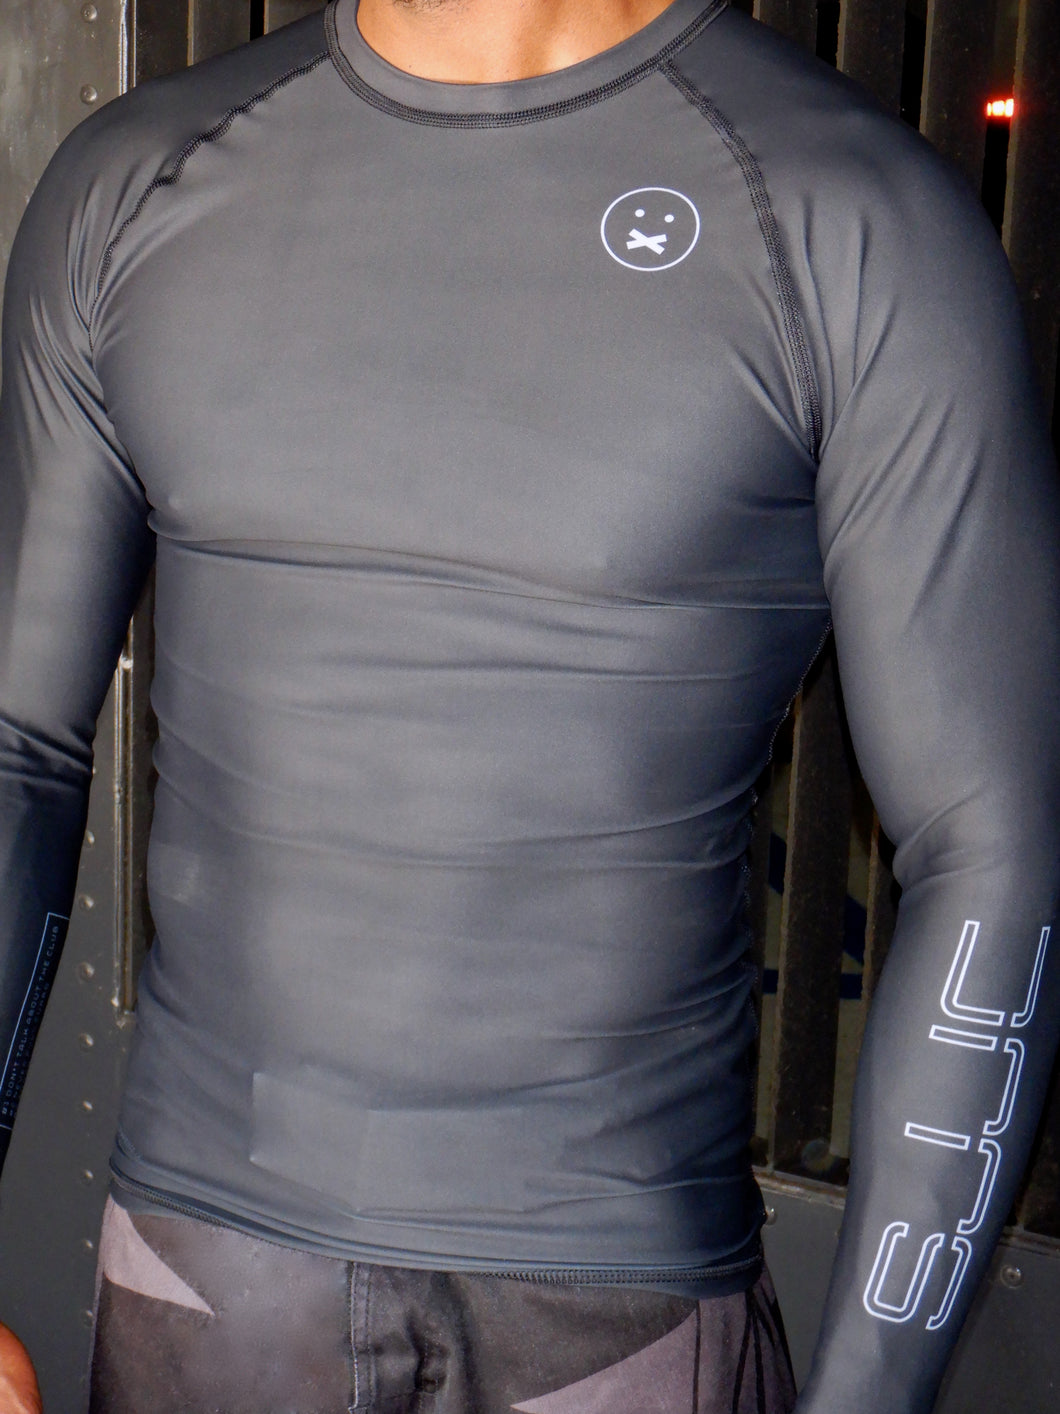 Edition 1.0 OG Long Sleeve USA Made Rashguard